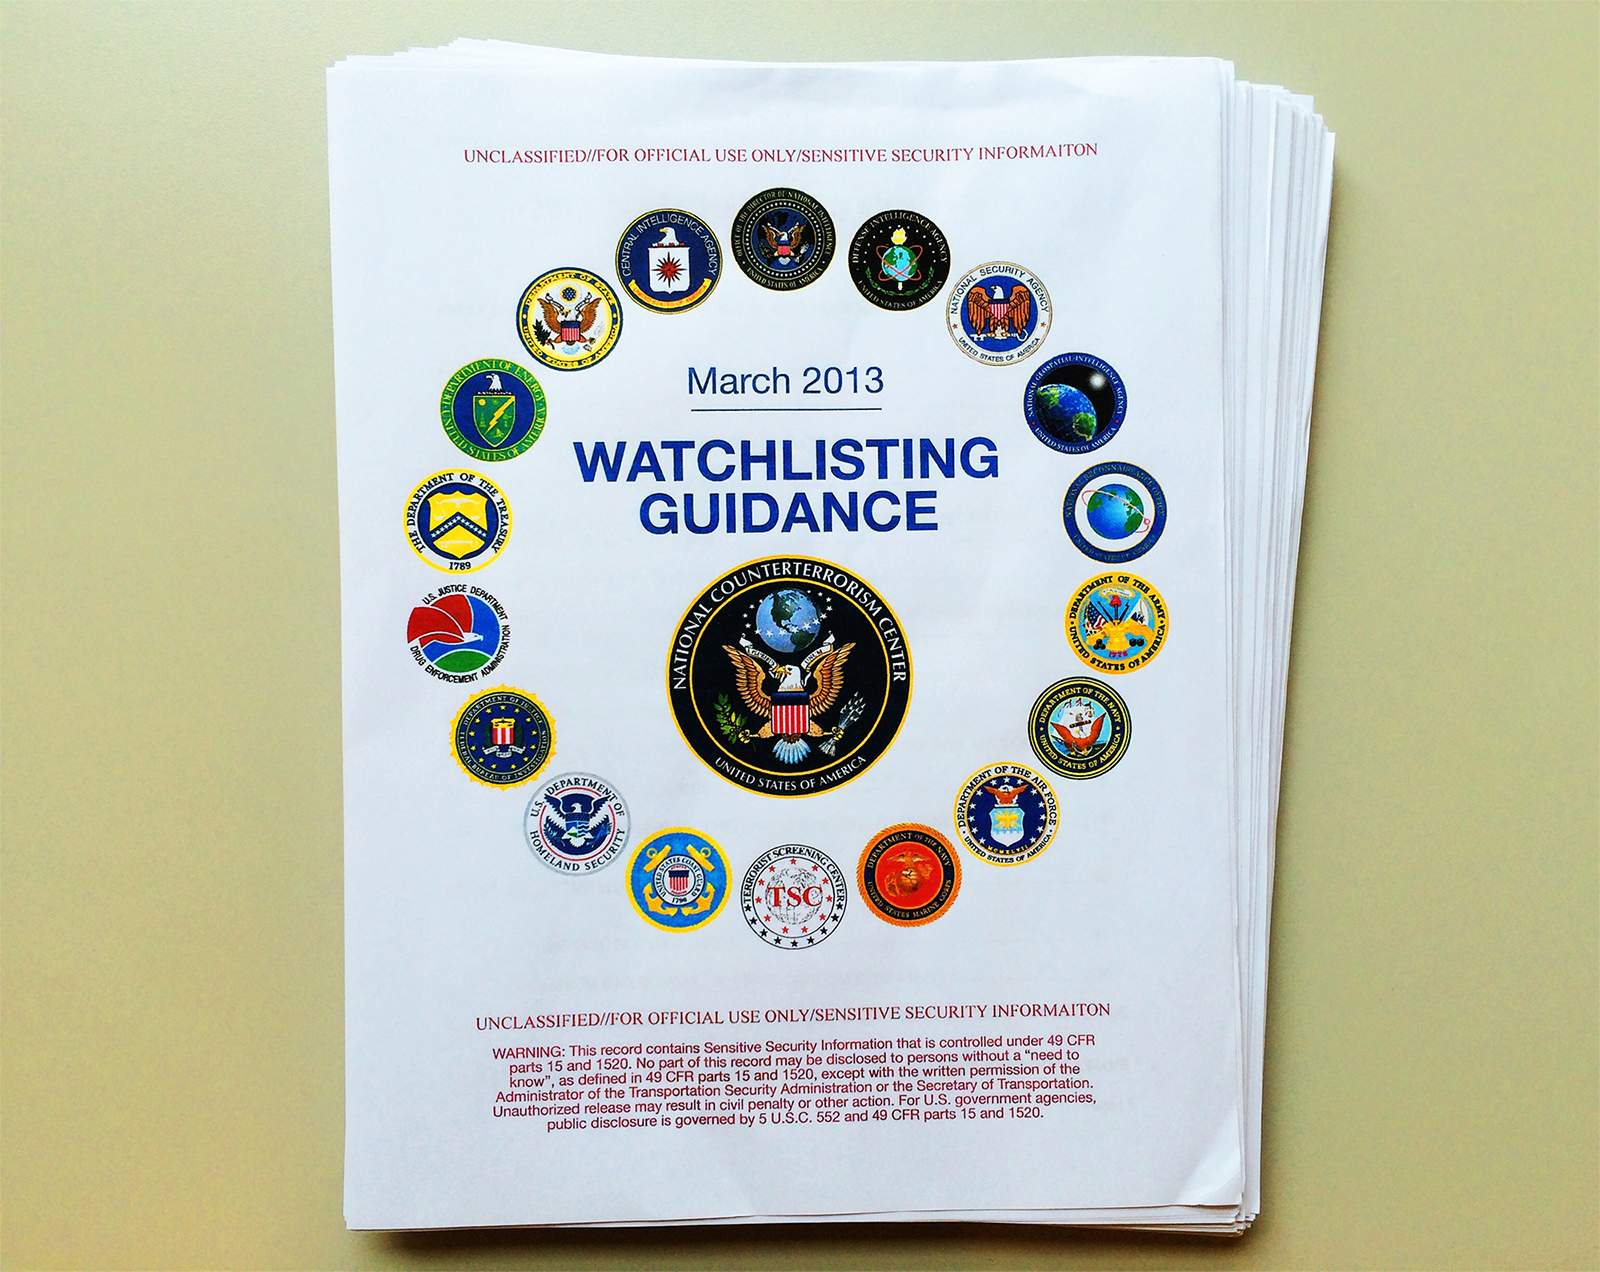 THE SECRET GOVERNMENT RULEBOOK FOR LABELING YOU A TERRORIST